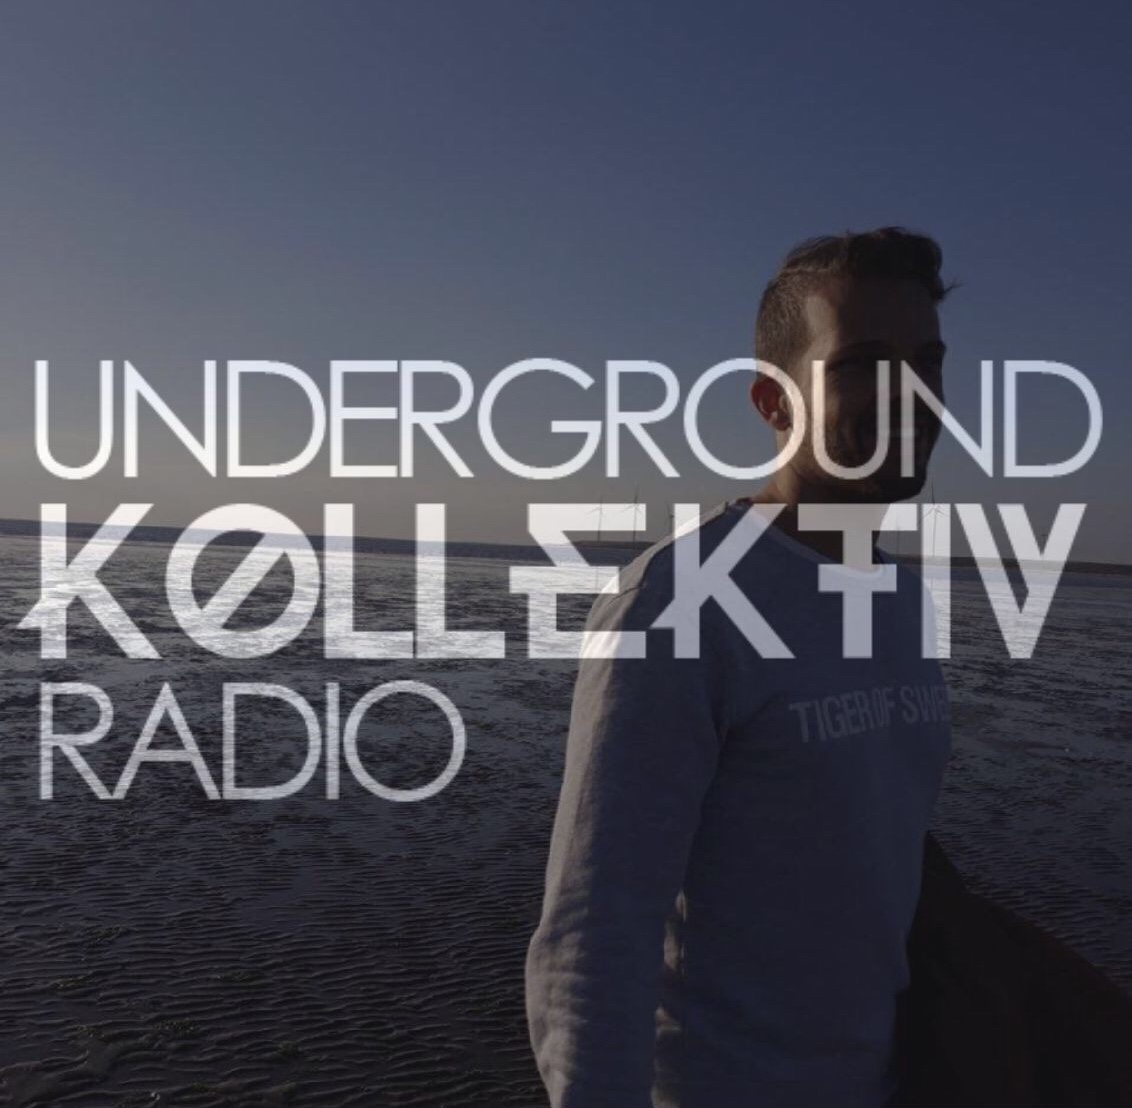 Live in 5, Fille V ! tune in! http://undergroundkollektiv.co.uk  #house #techno #radio #streaming #udgk #housemusiclovers #technomusiclovers #technoradio #houseradio #dancing #raving #goodtimes #goodvibes #berlin #nyc  #ibiza20 #london #friday #fridaynight #weekend #welcome #machesterpic.twitter.com/933ORM2Nid